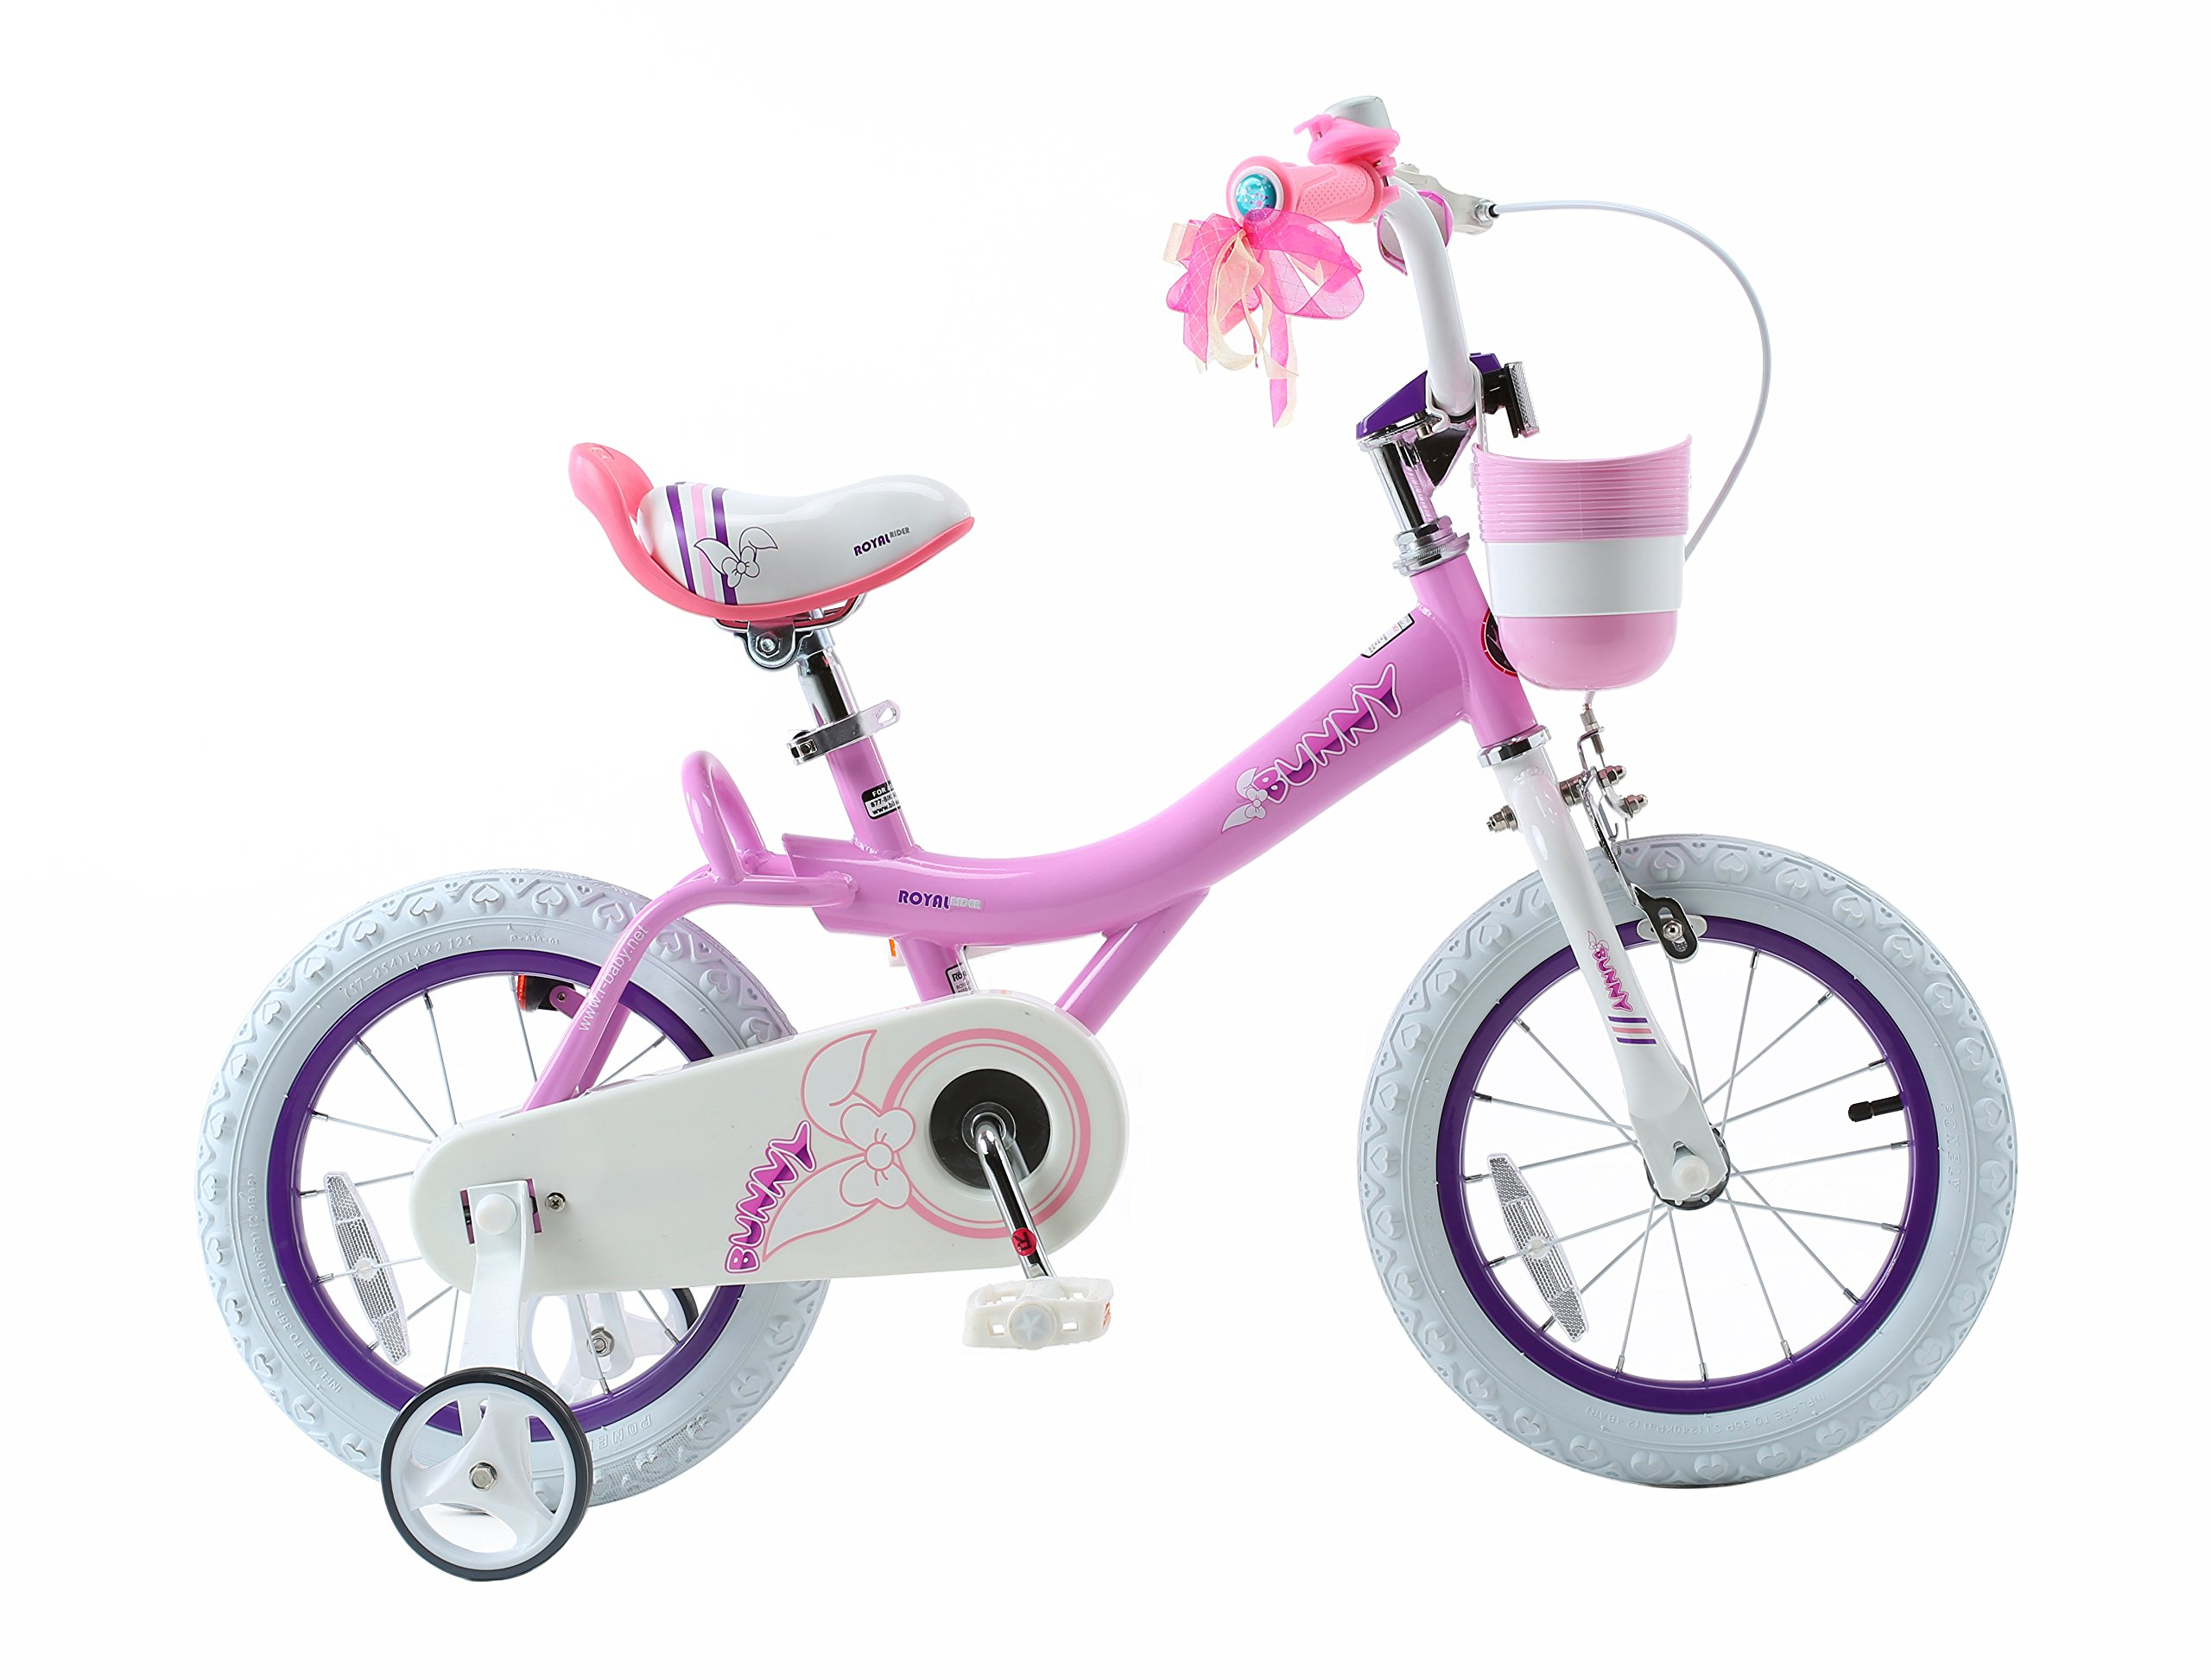 Royalbaby Bunny Girl's Bike, 14 inch wheels with basket and training wheels training wheels, gifts for kids, girls' bicycles, Pink by Royalbaby